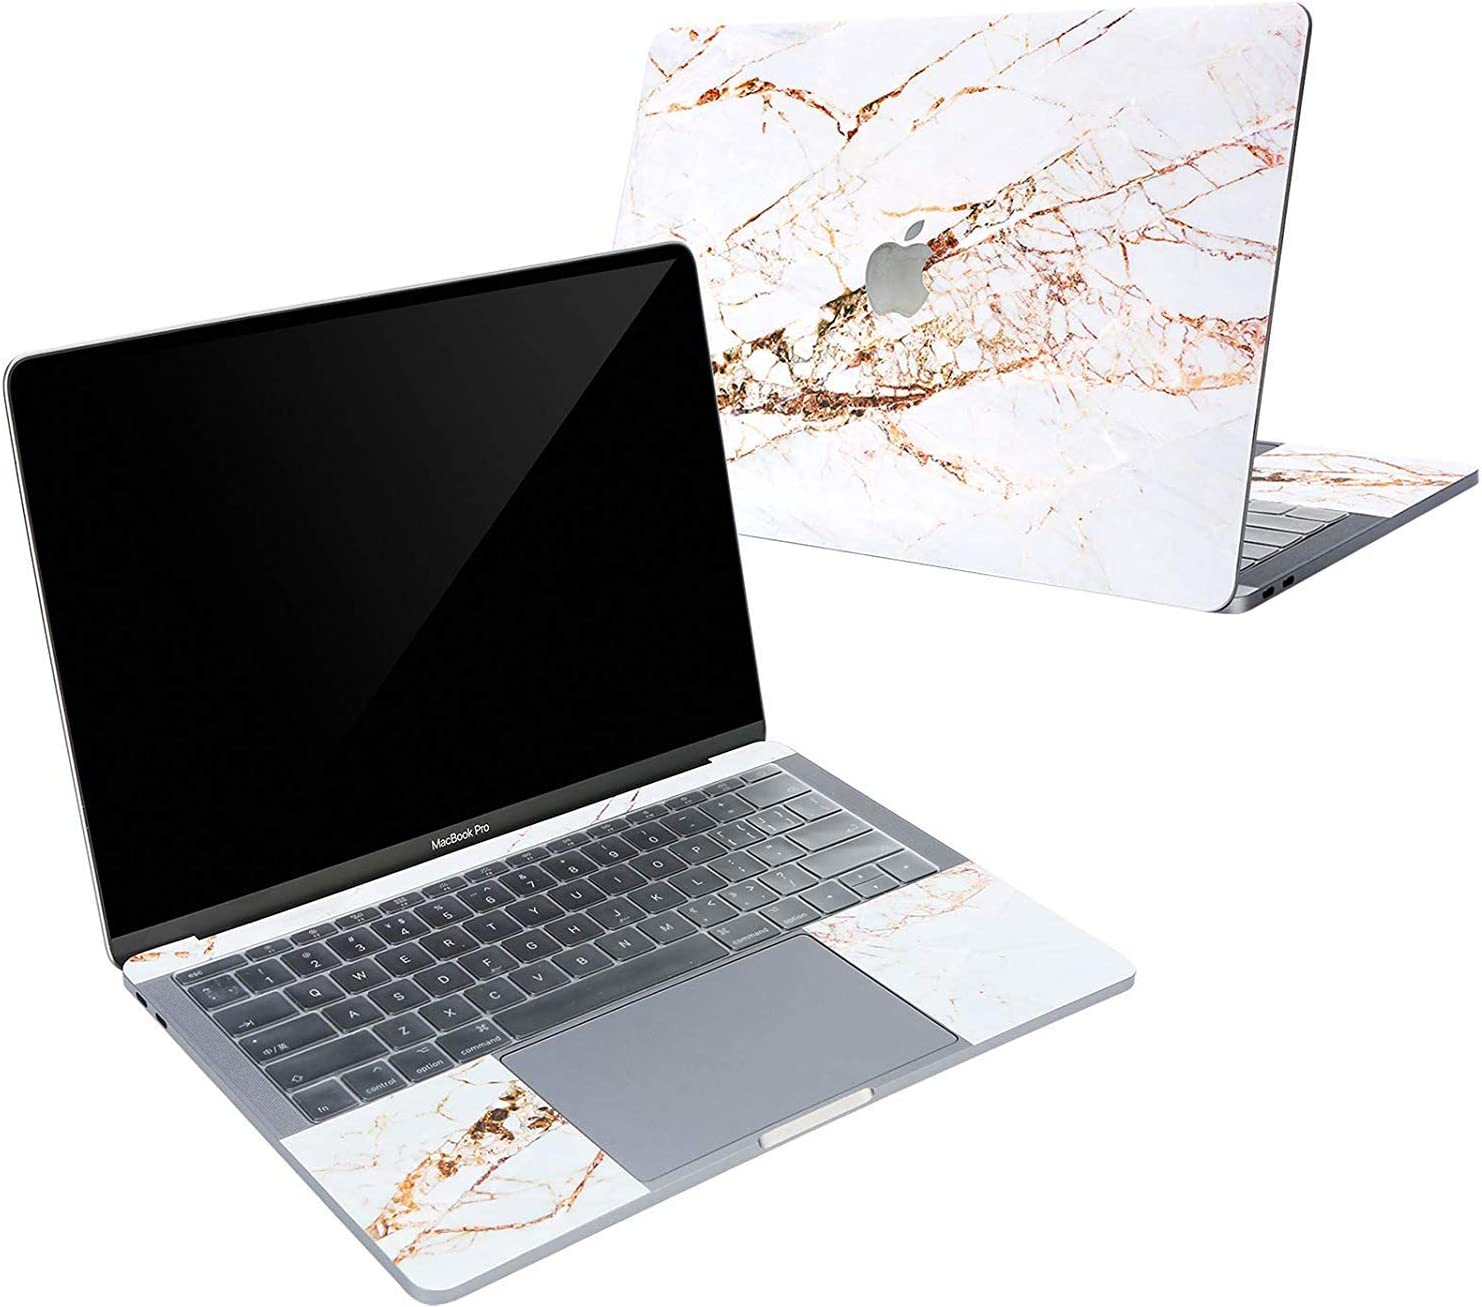 Digi-Tatoo 4-in-1 MacBook Skin Decal Sticker Compatible with Apple MacBook Pro 16 Inch w/Touch Bar (2019 New Model A2141), Full Body Protective, Removable and Anti-Scratch, Golden Rift